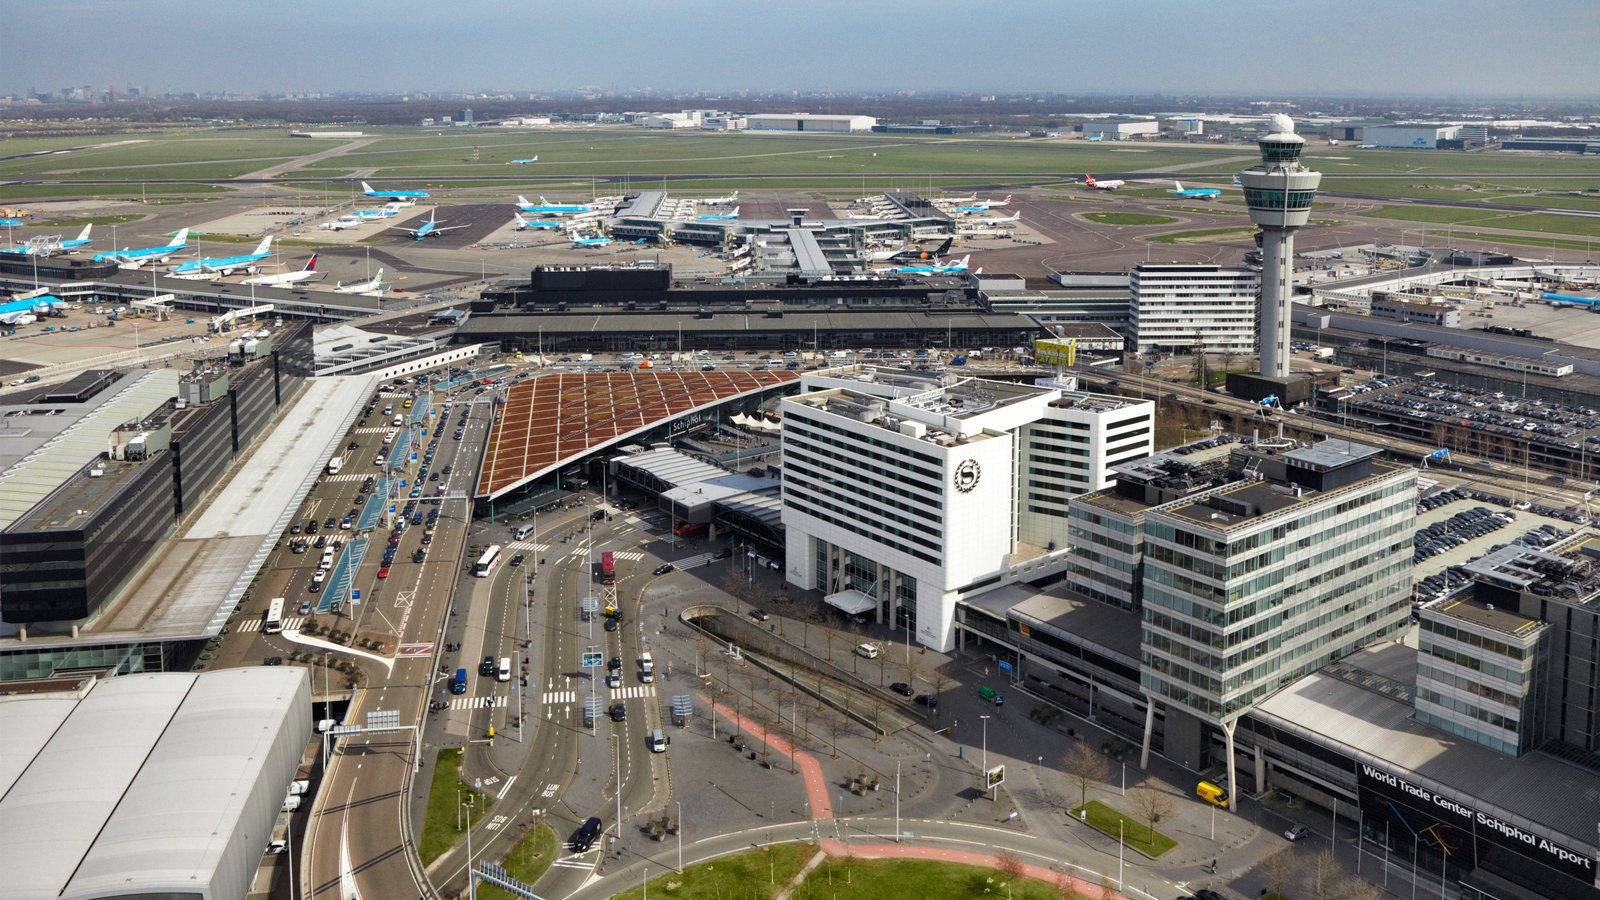 Parking facilities are provided close by the departure and arrival terminals at Schiphol Airport